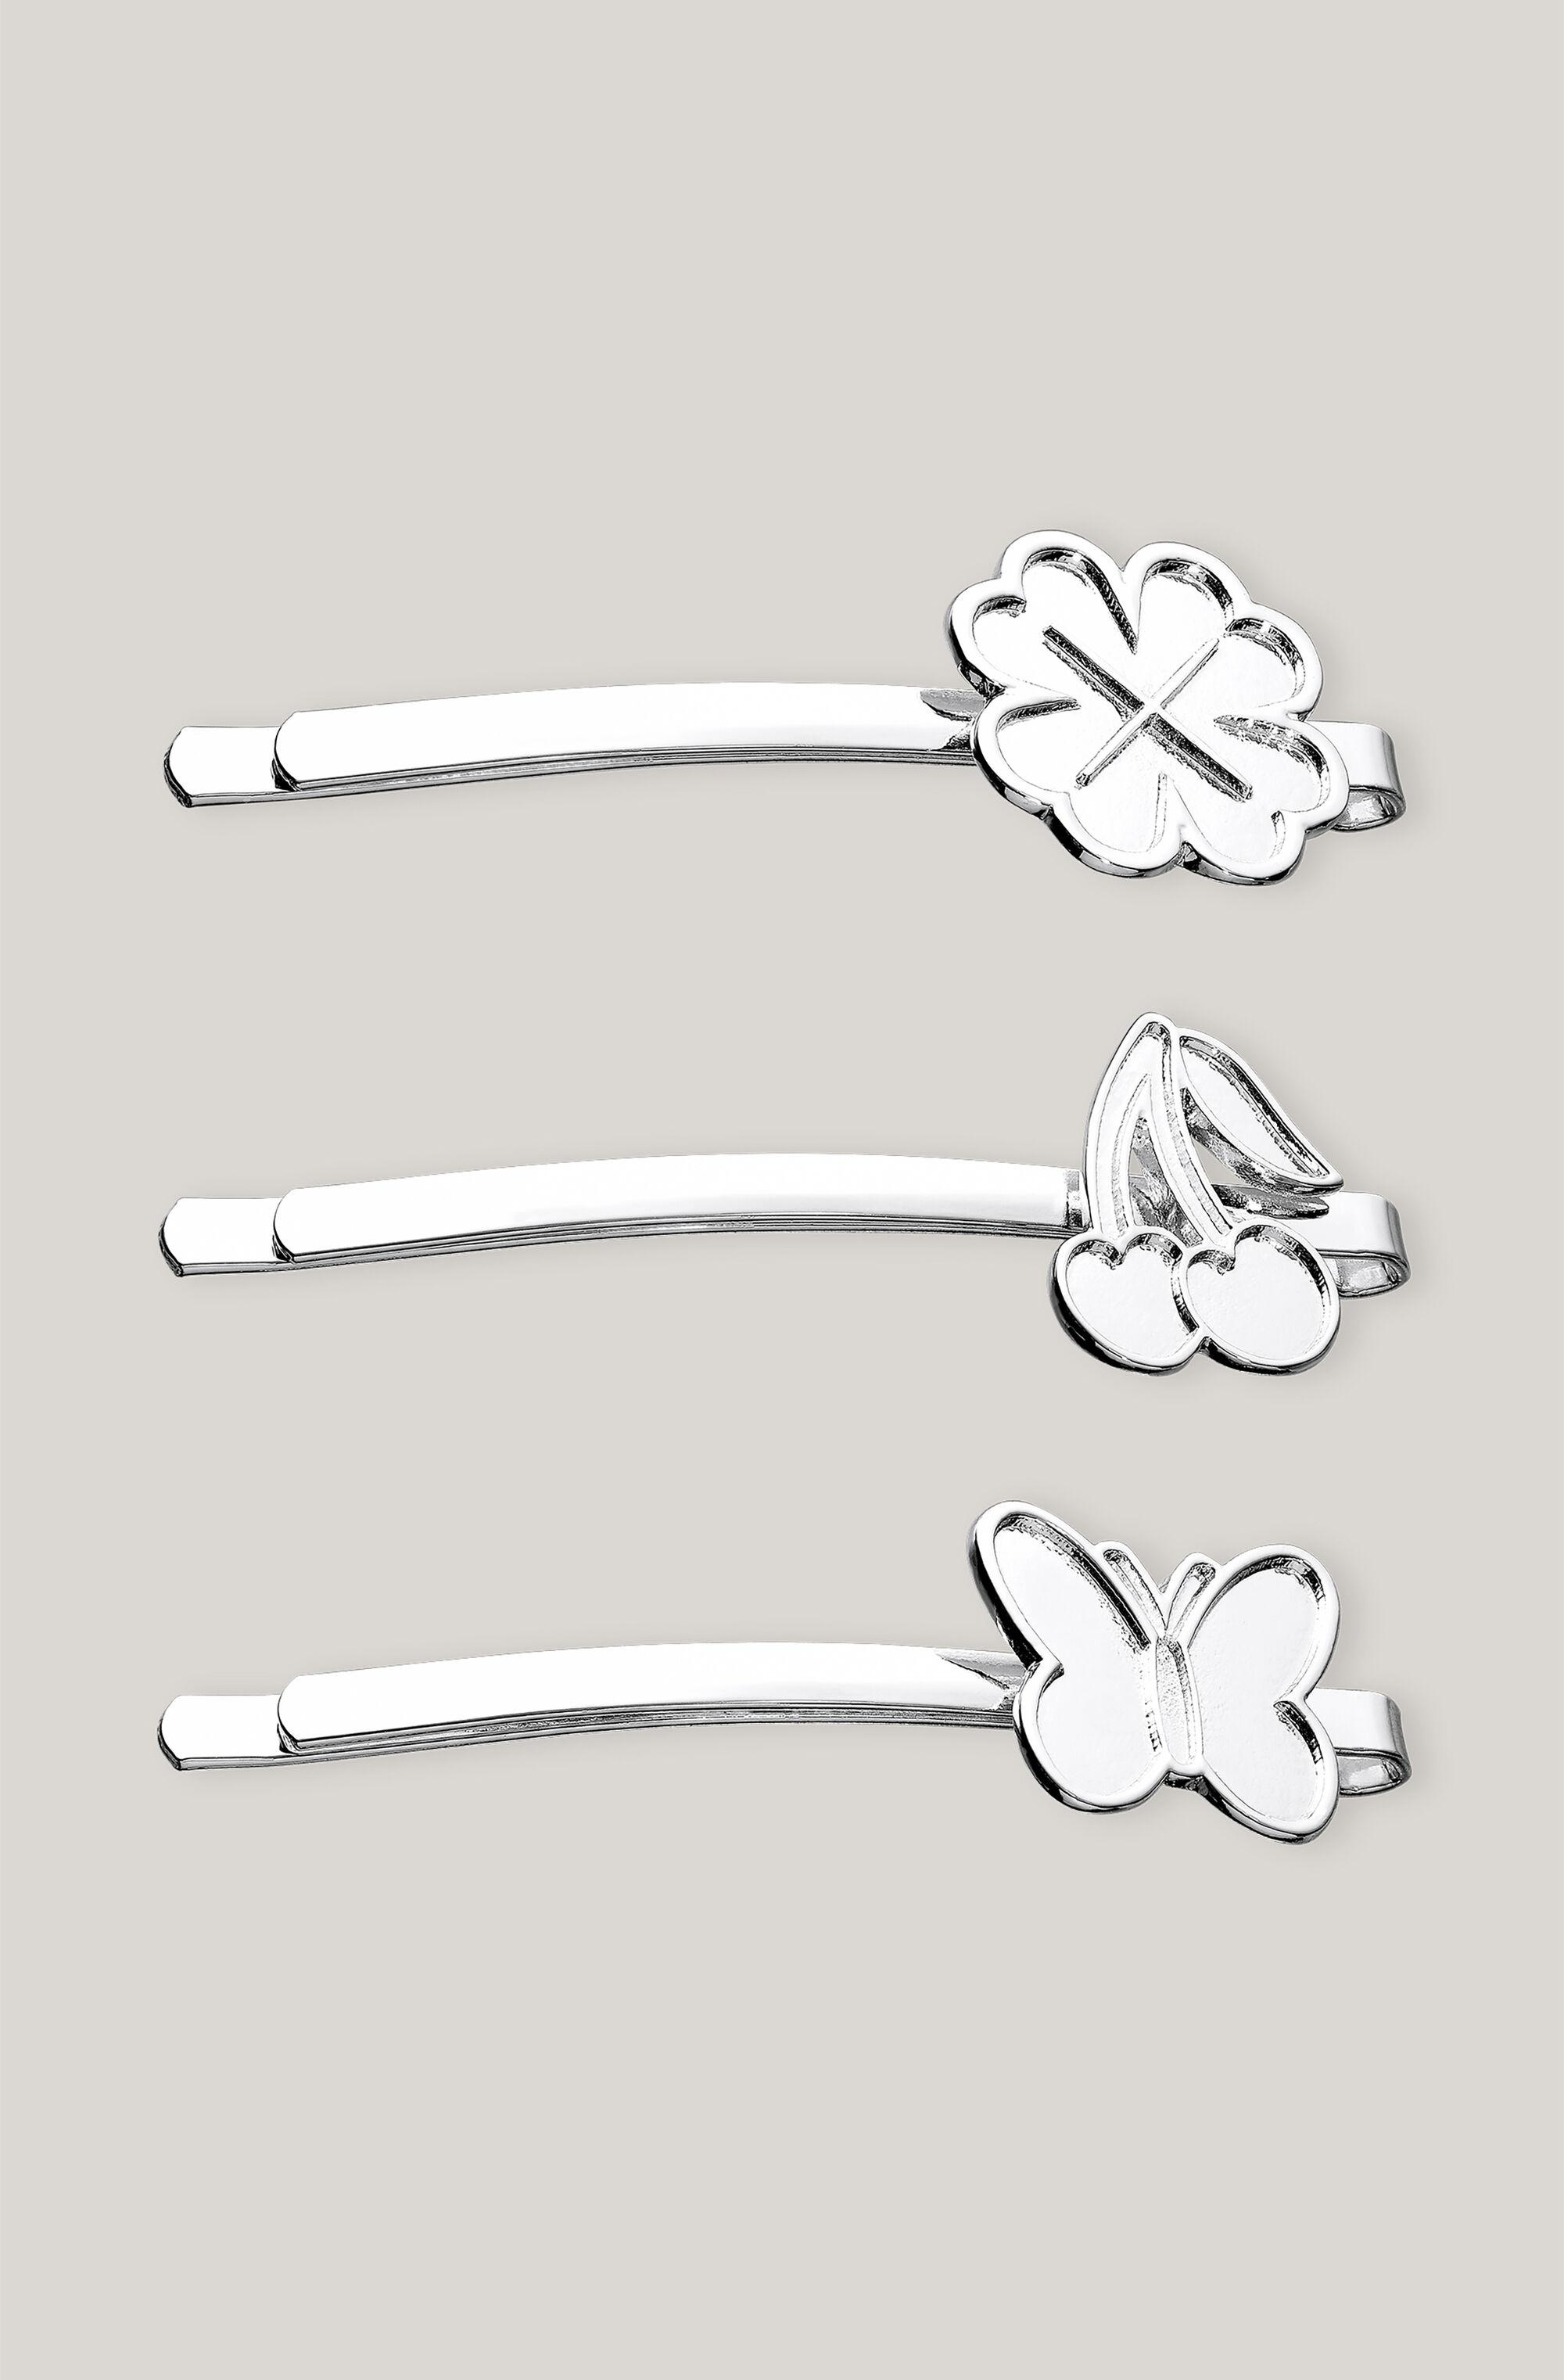 Charms Accessories Hairpin Clover, Cherry, Butterfly